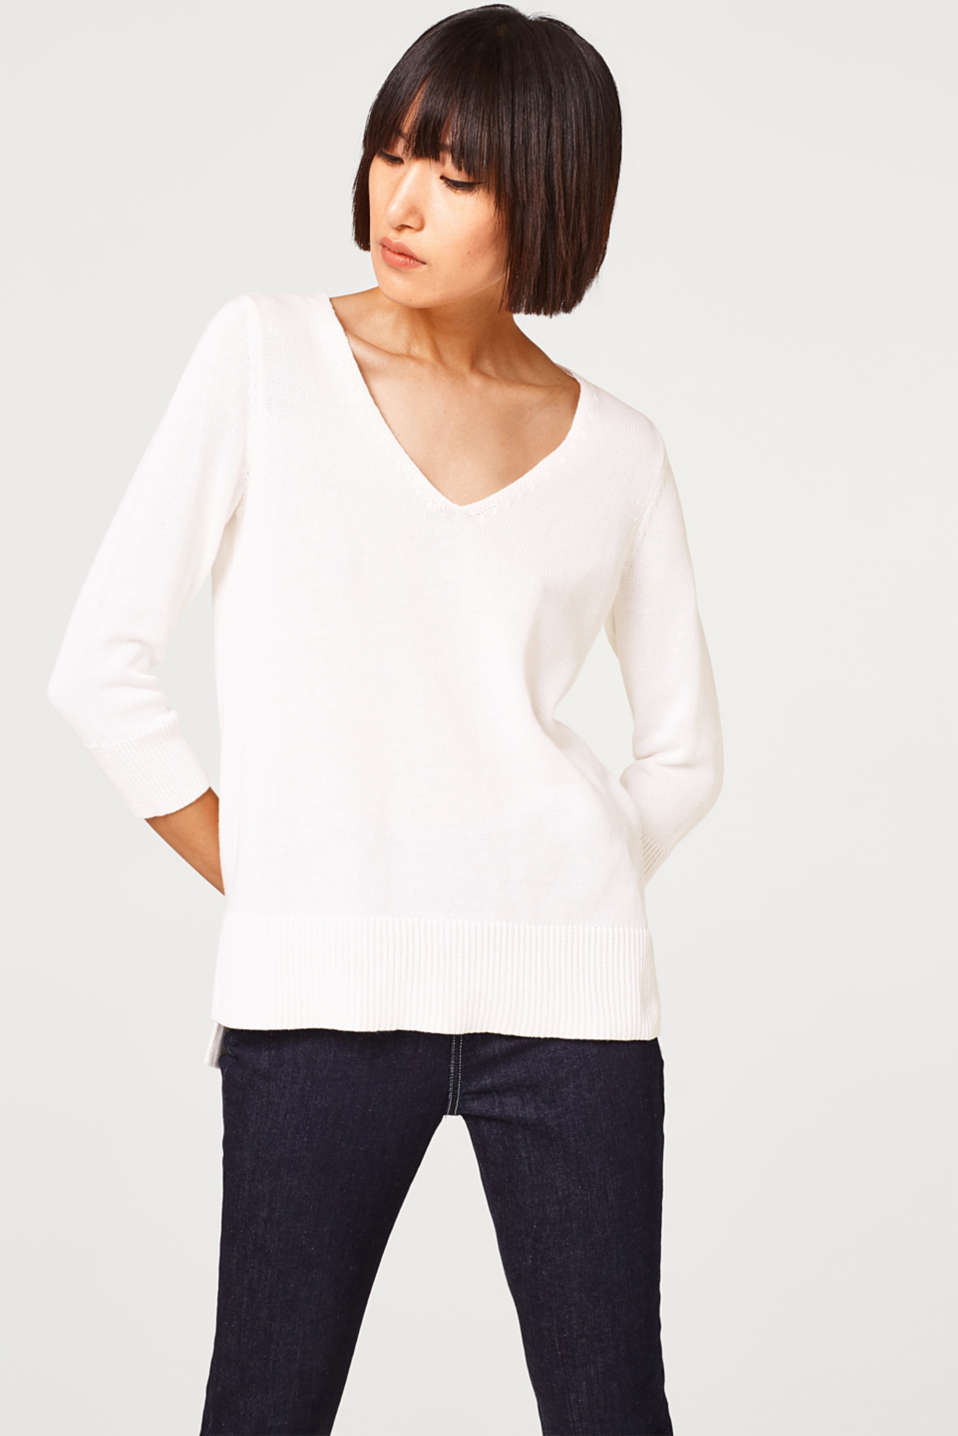 Esprit - V-neck jumper with neckband at the back, 100% cotton